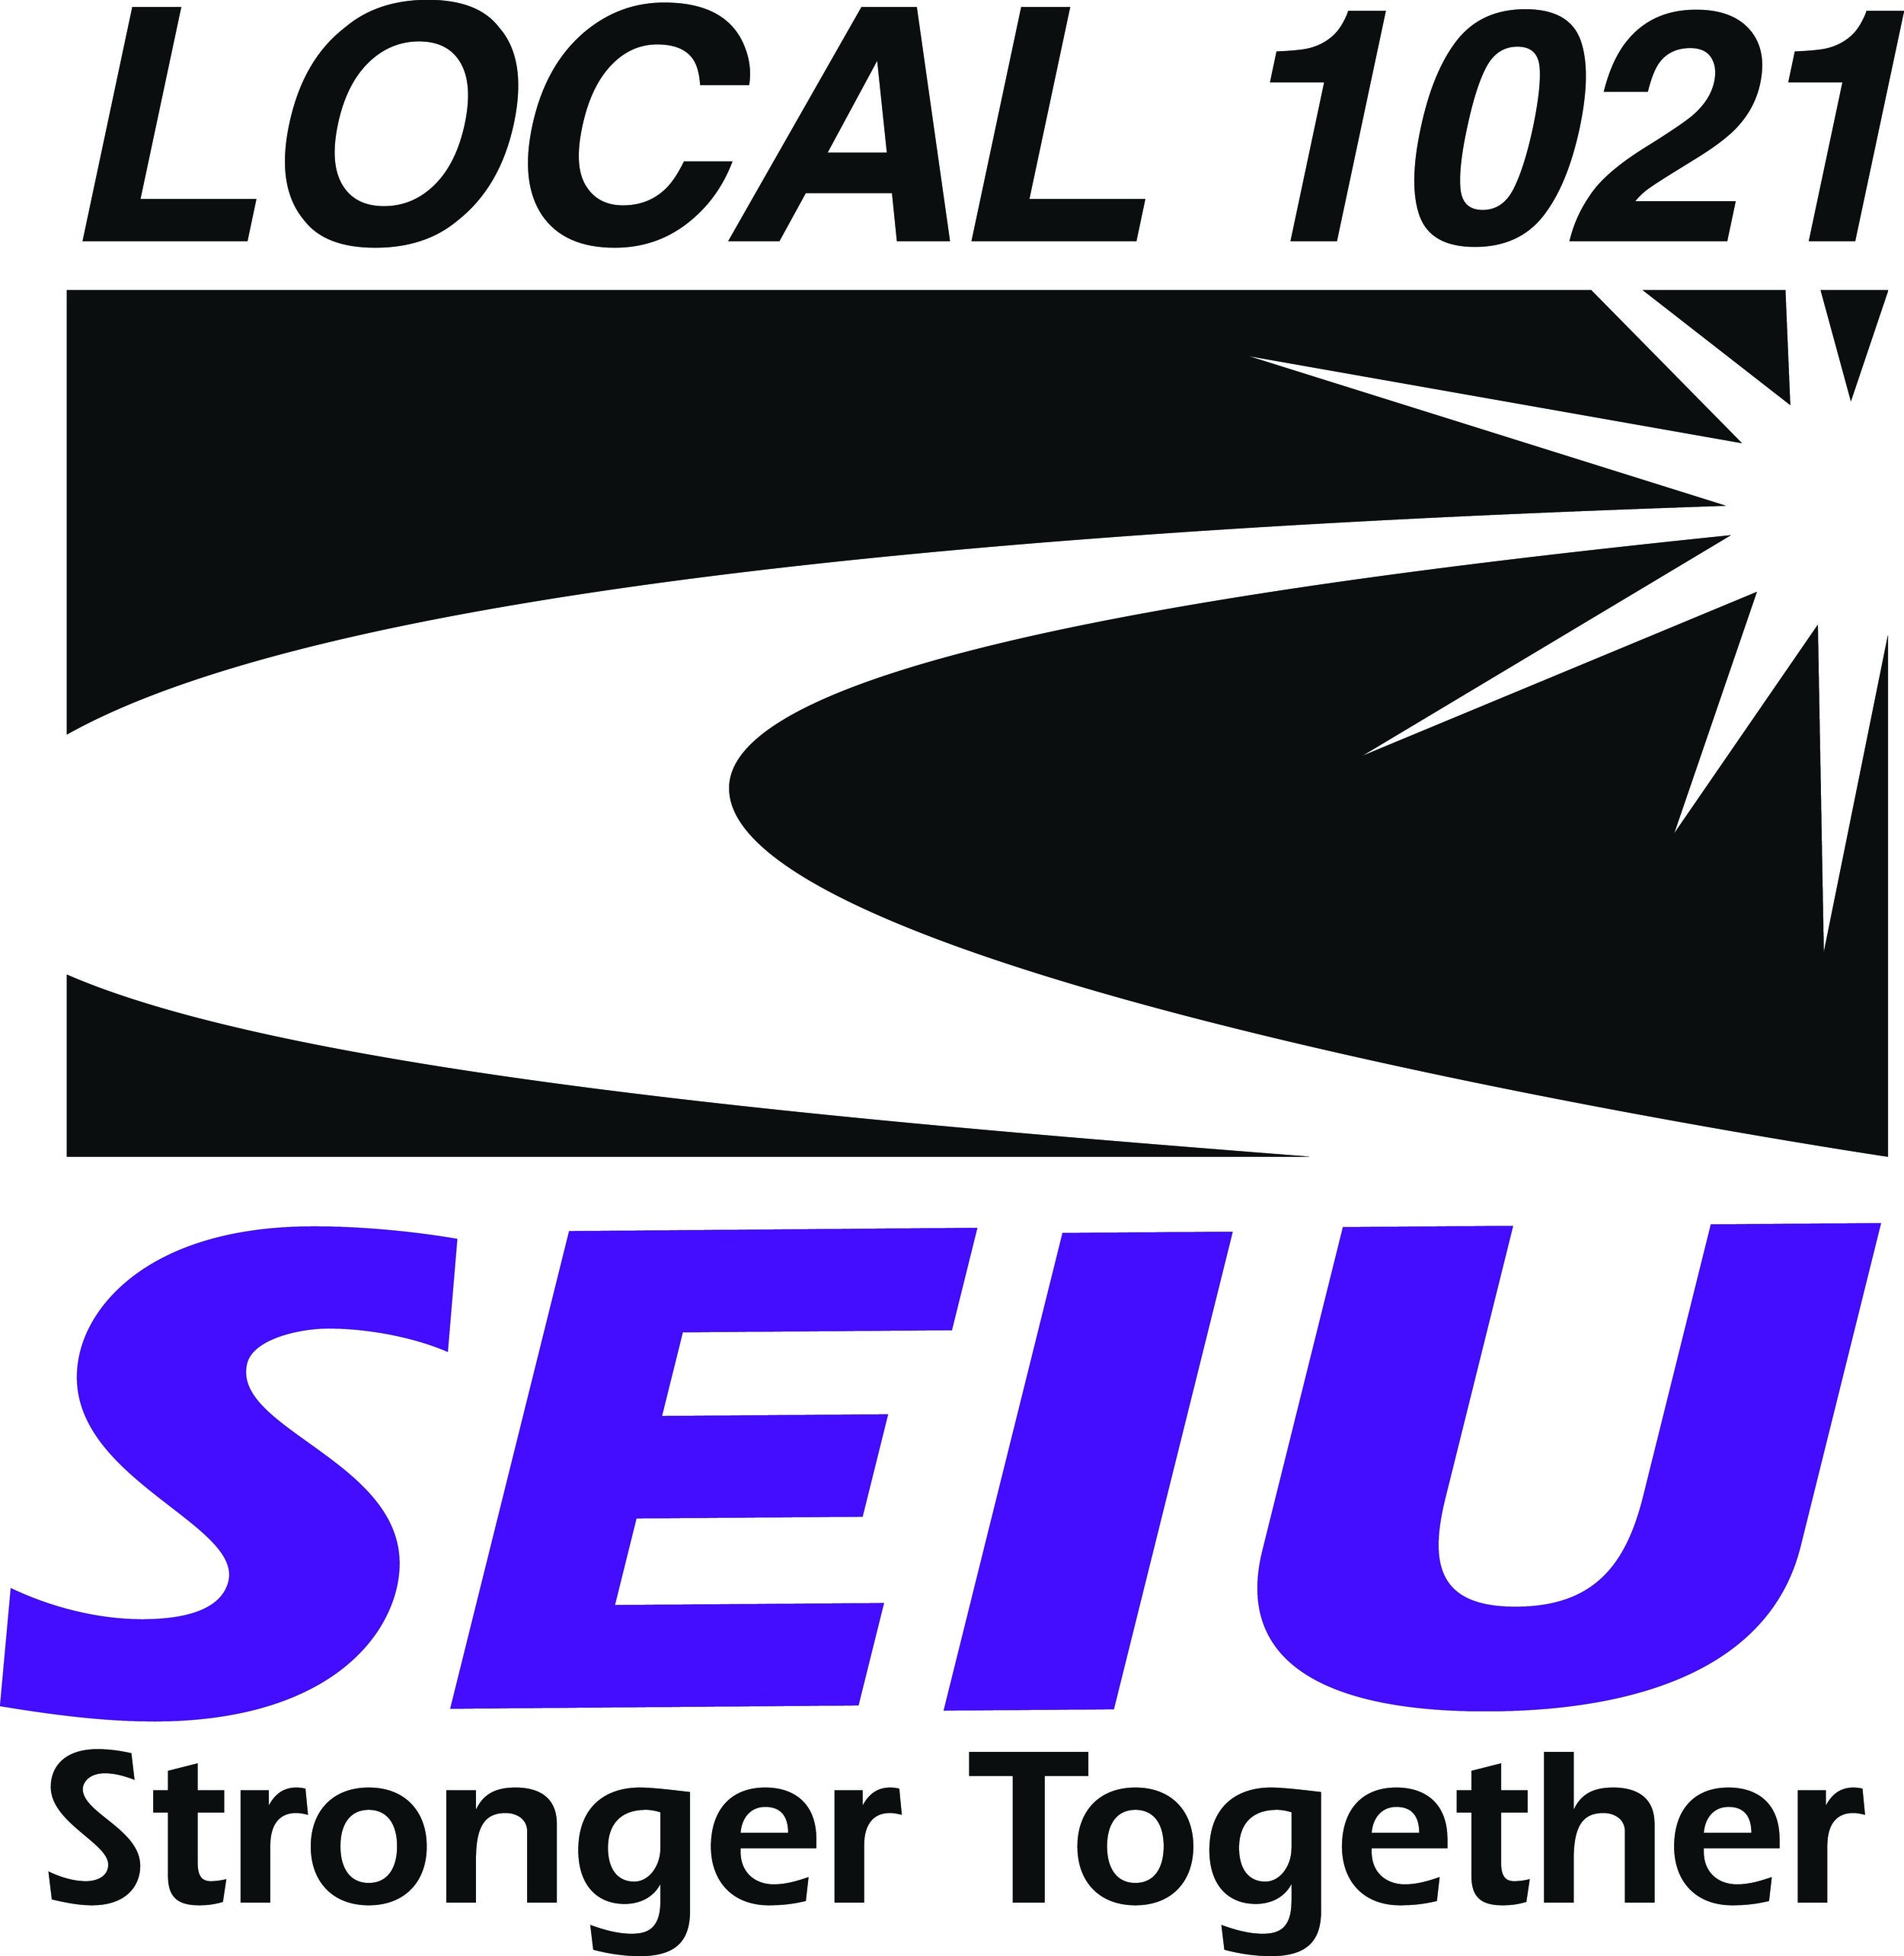 SEIU Local 1021 Logo HR.jpg